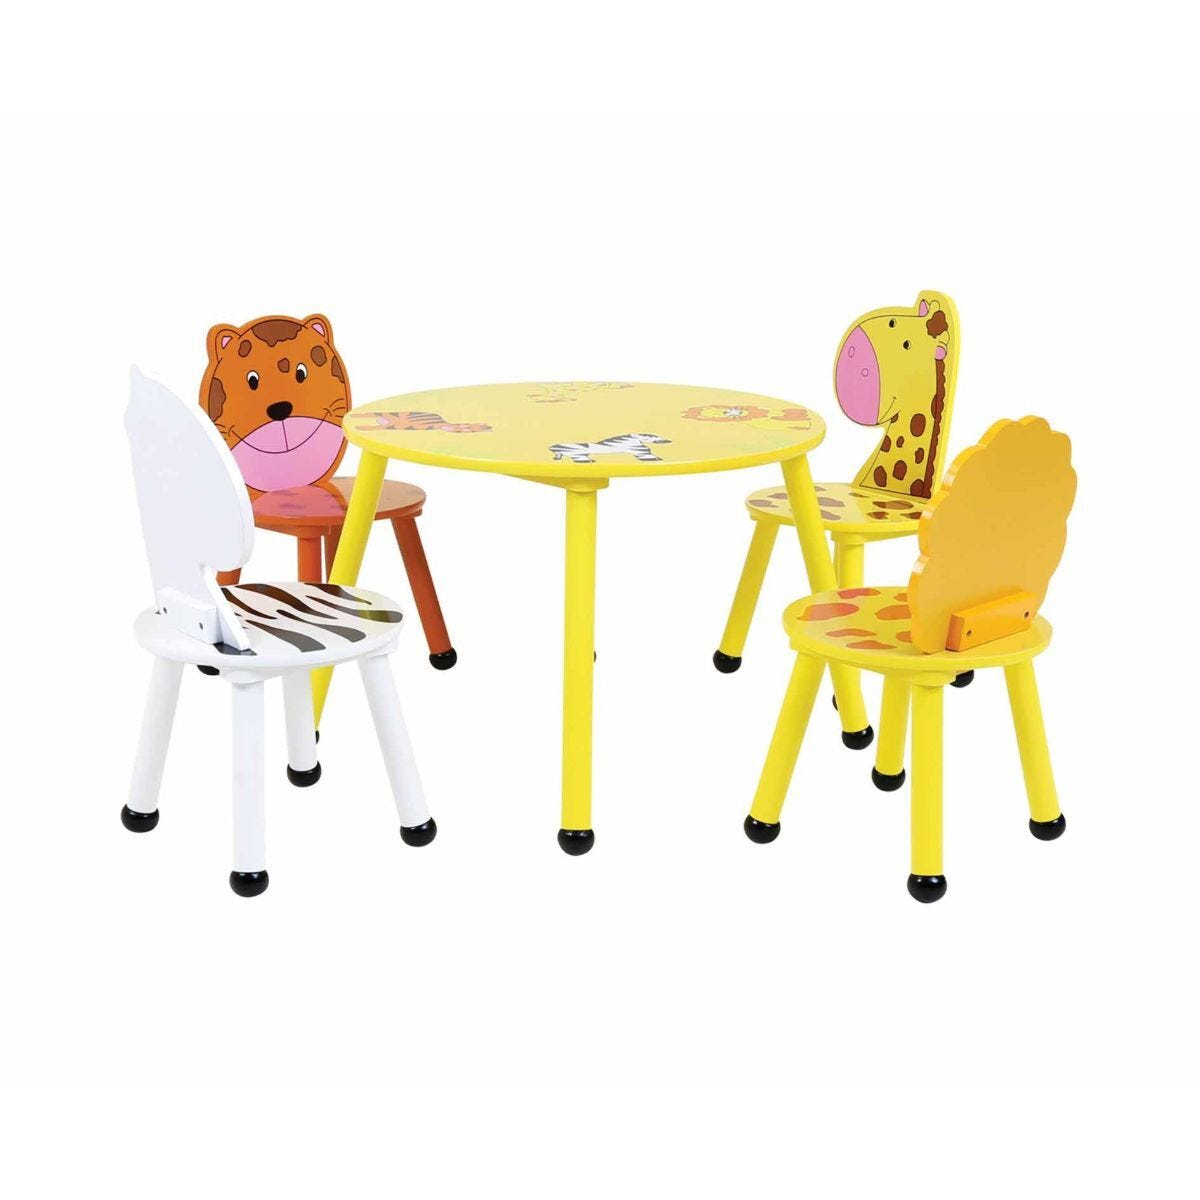 Charles Bentley Childrens Jungle Wooden Round Table and 4 Chairs Set